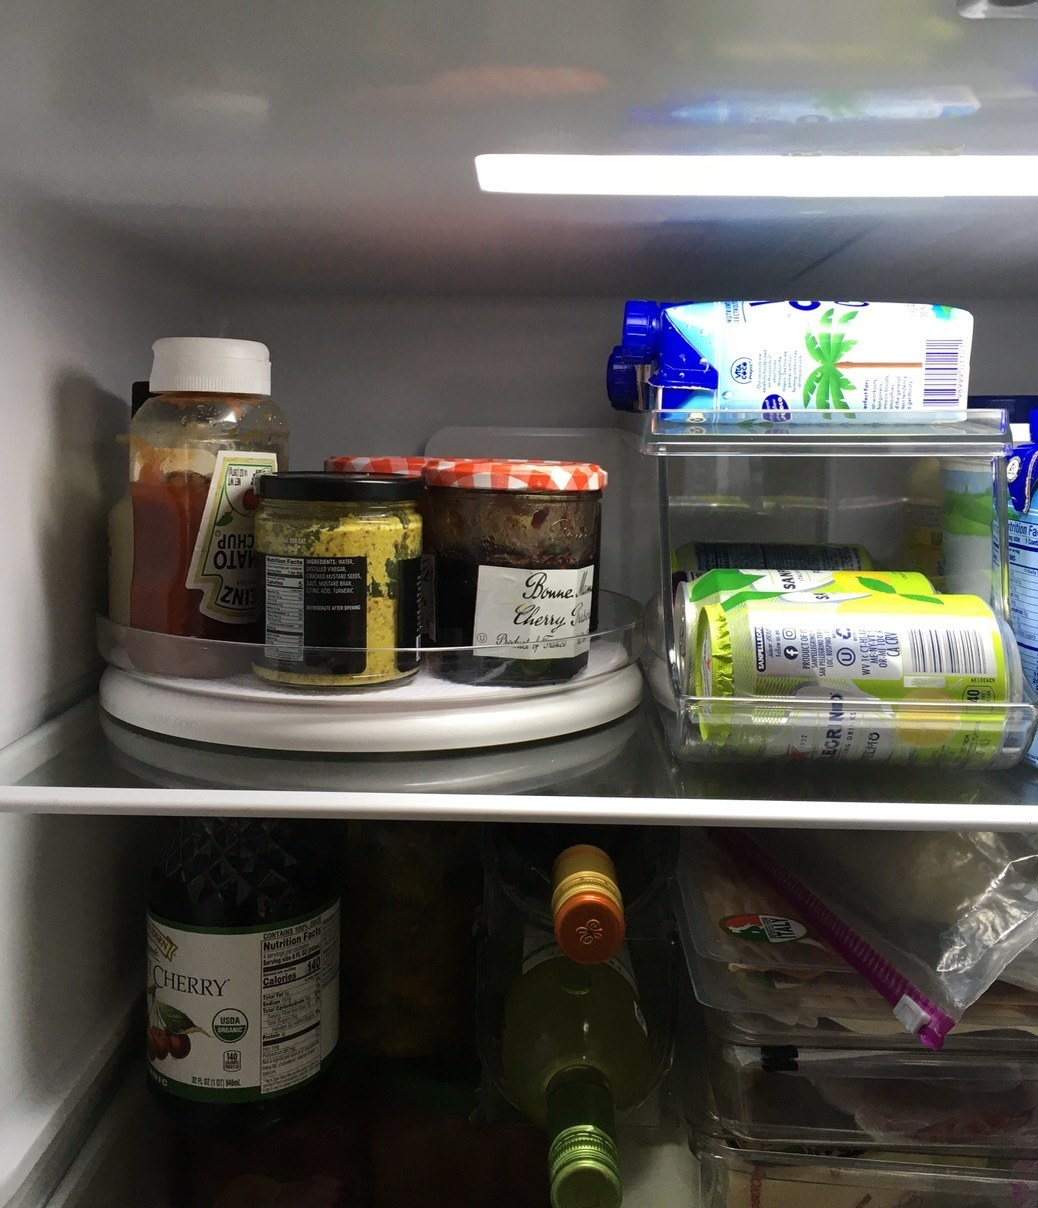 The turntable in a fridge holding several condiments